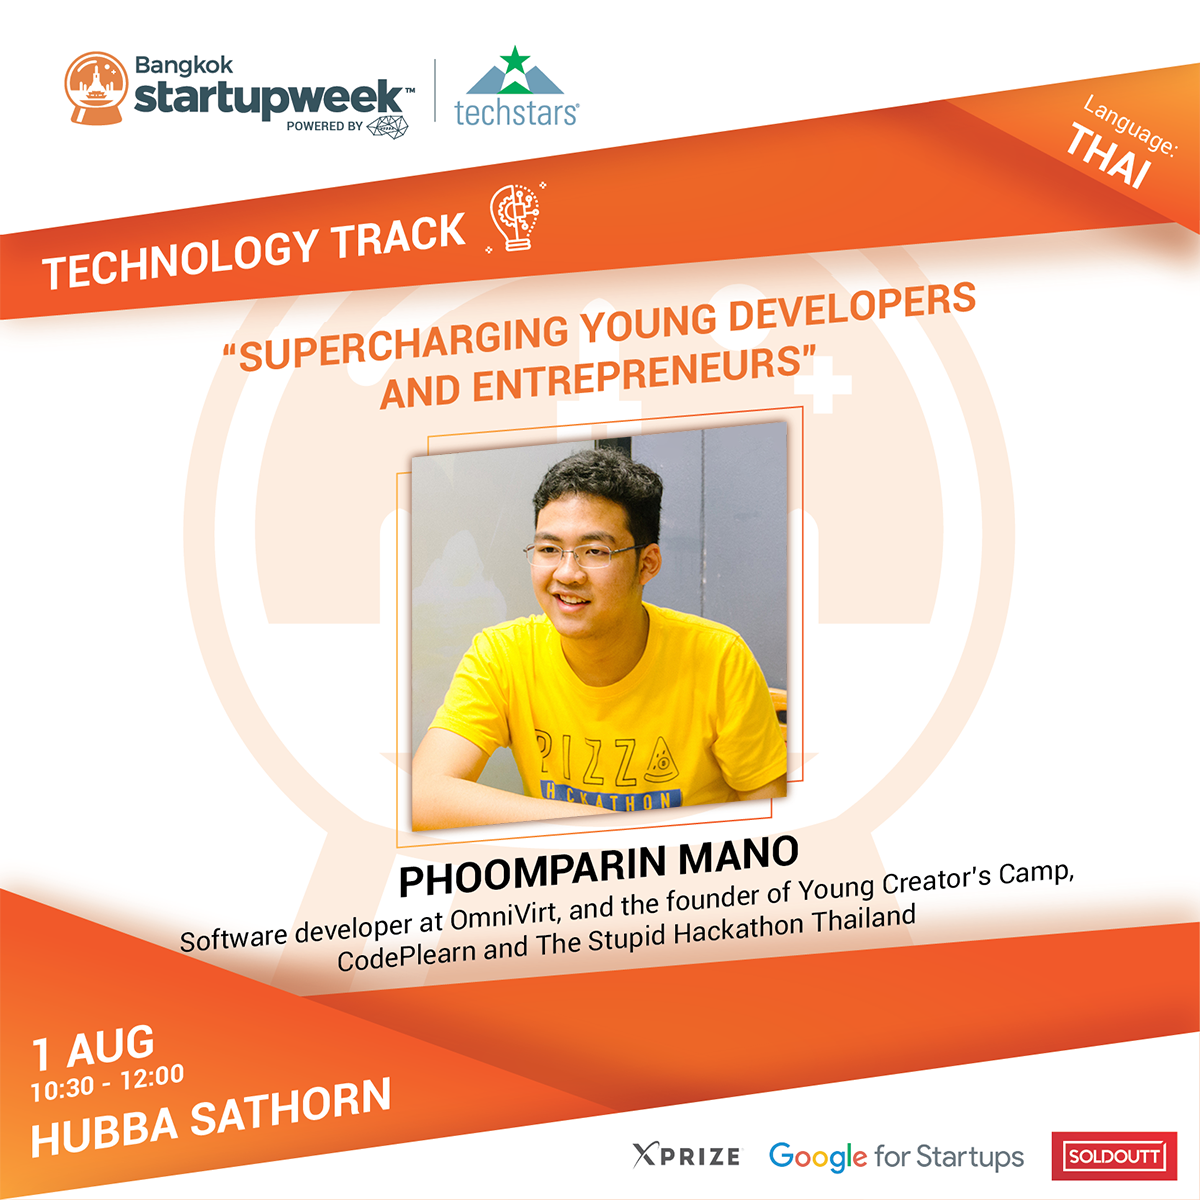 Supercharging Young Developers and Entrepreneurs